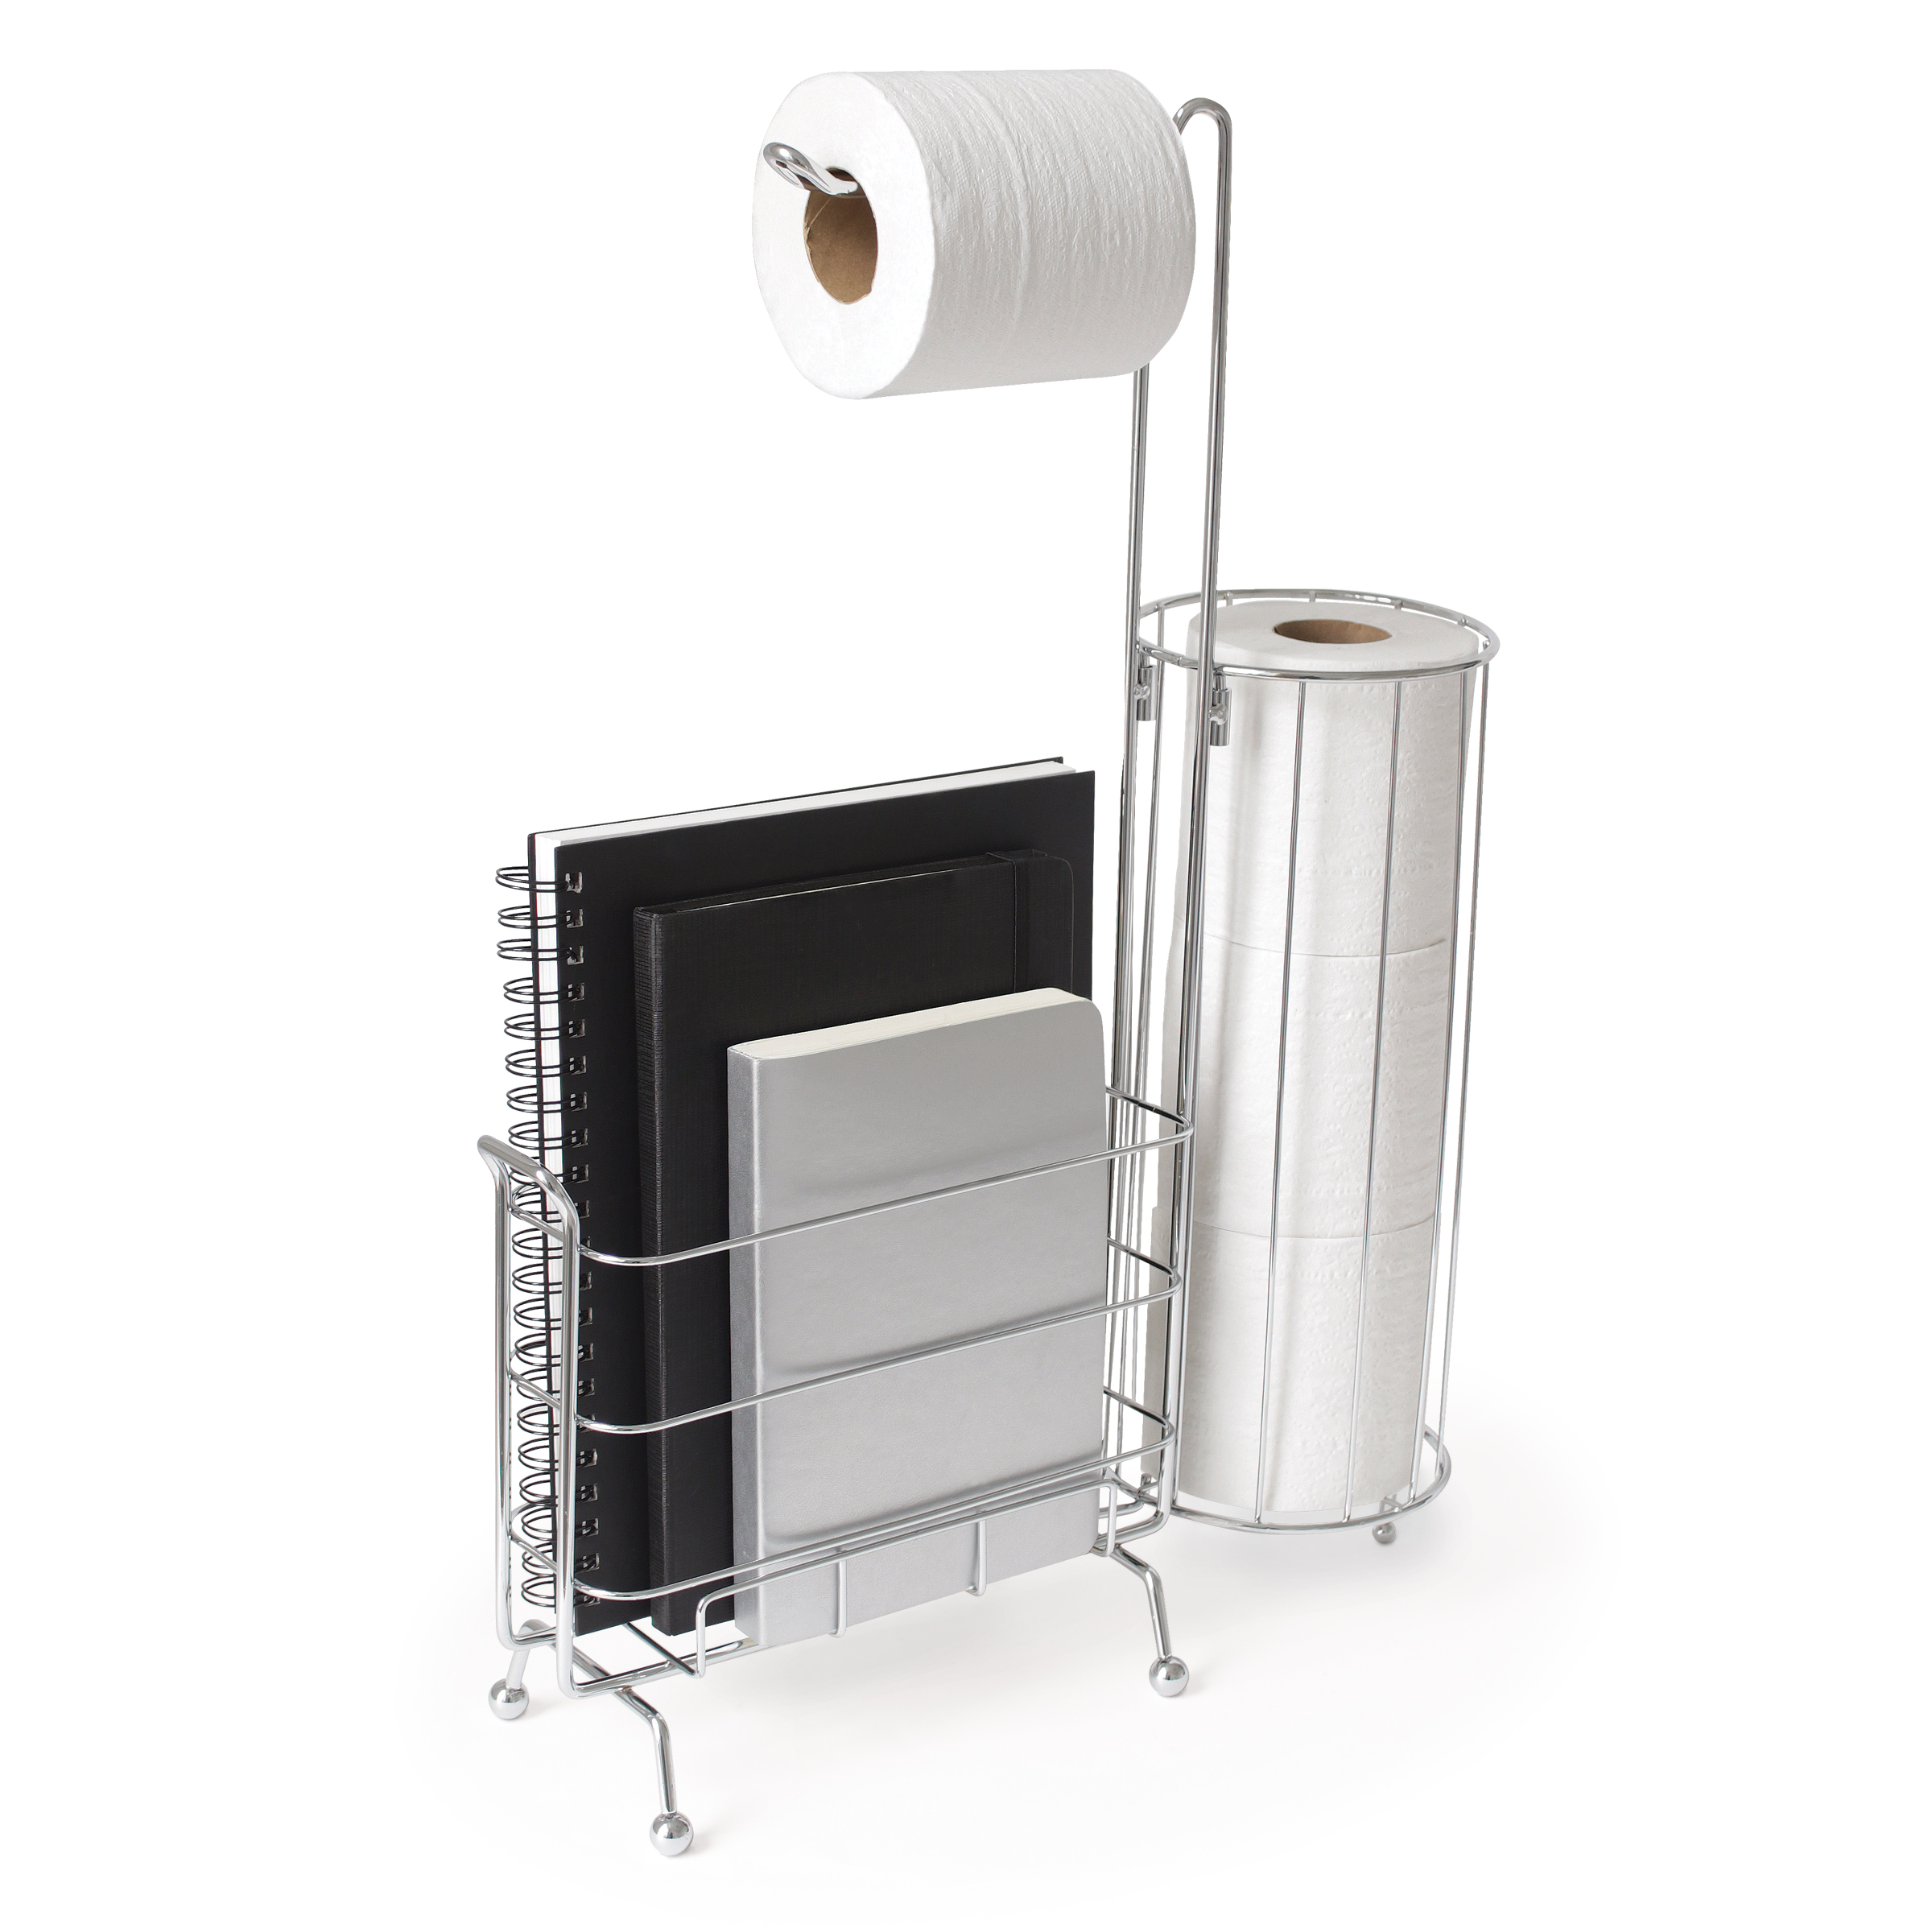 WC toilet paper caddy